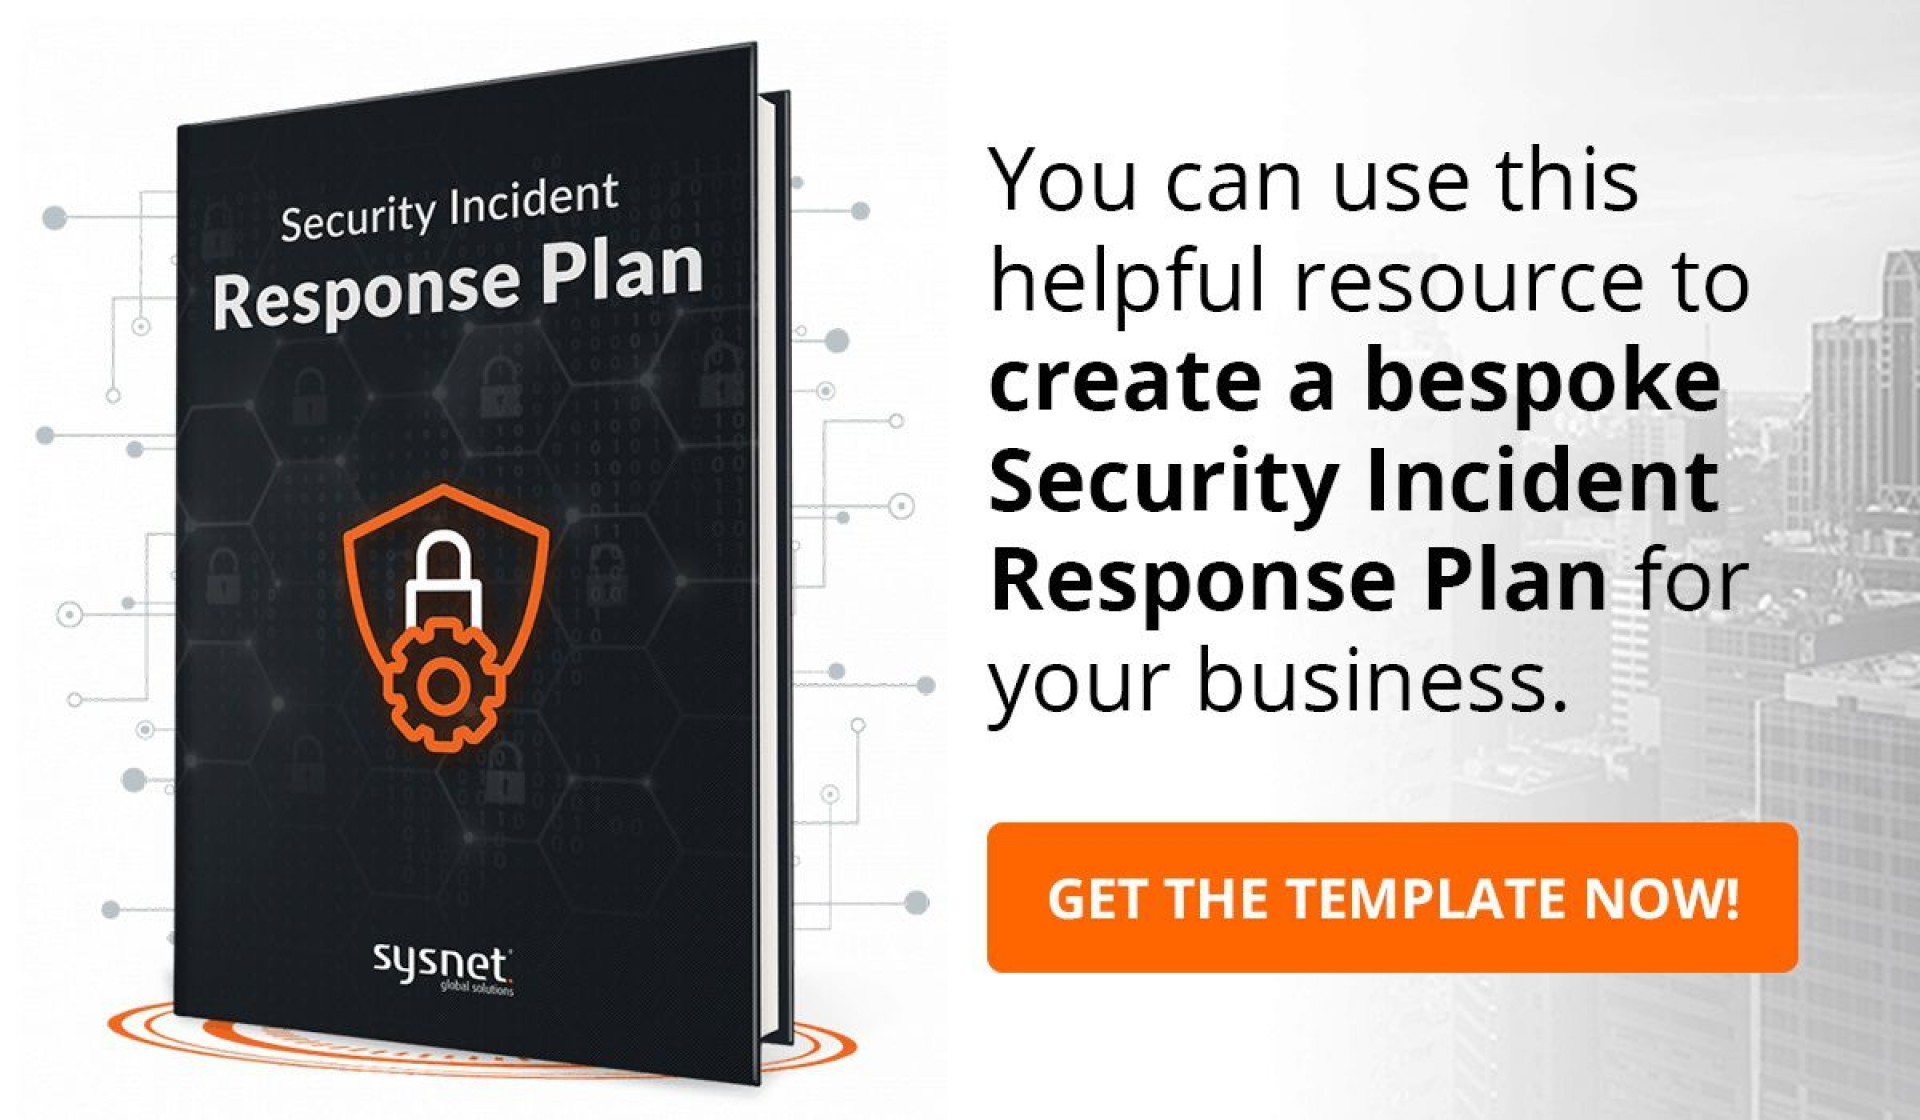 006 Unusual Cyber Incident Response Plan Template Sample  Pdf Security Example1920